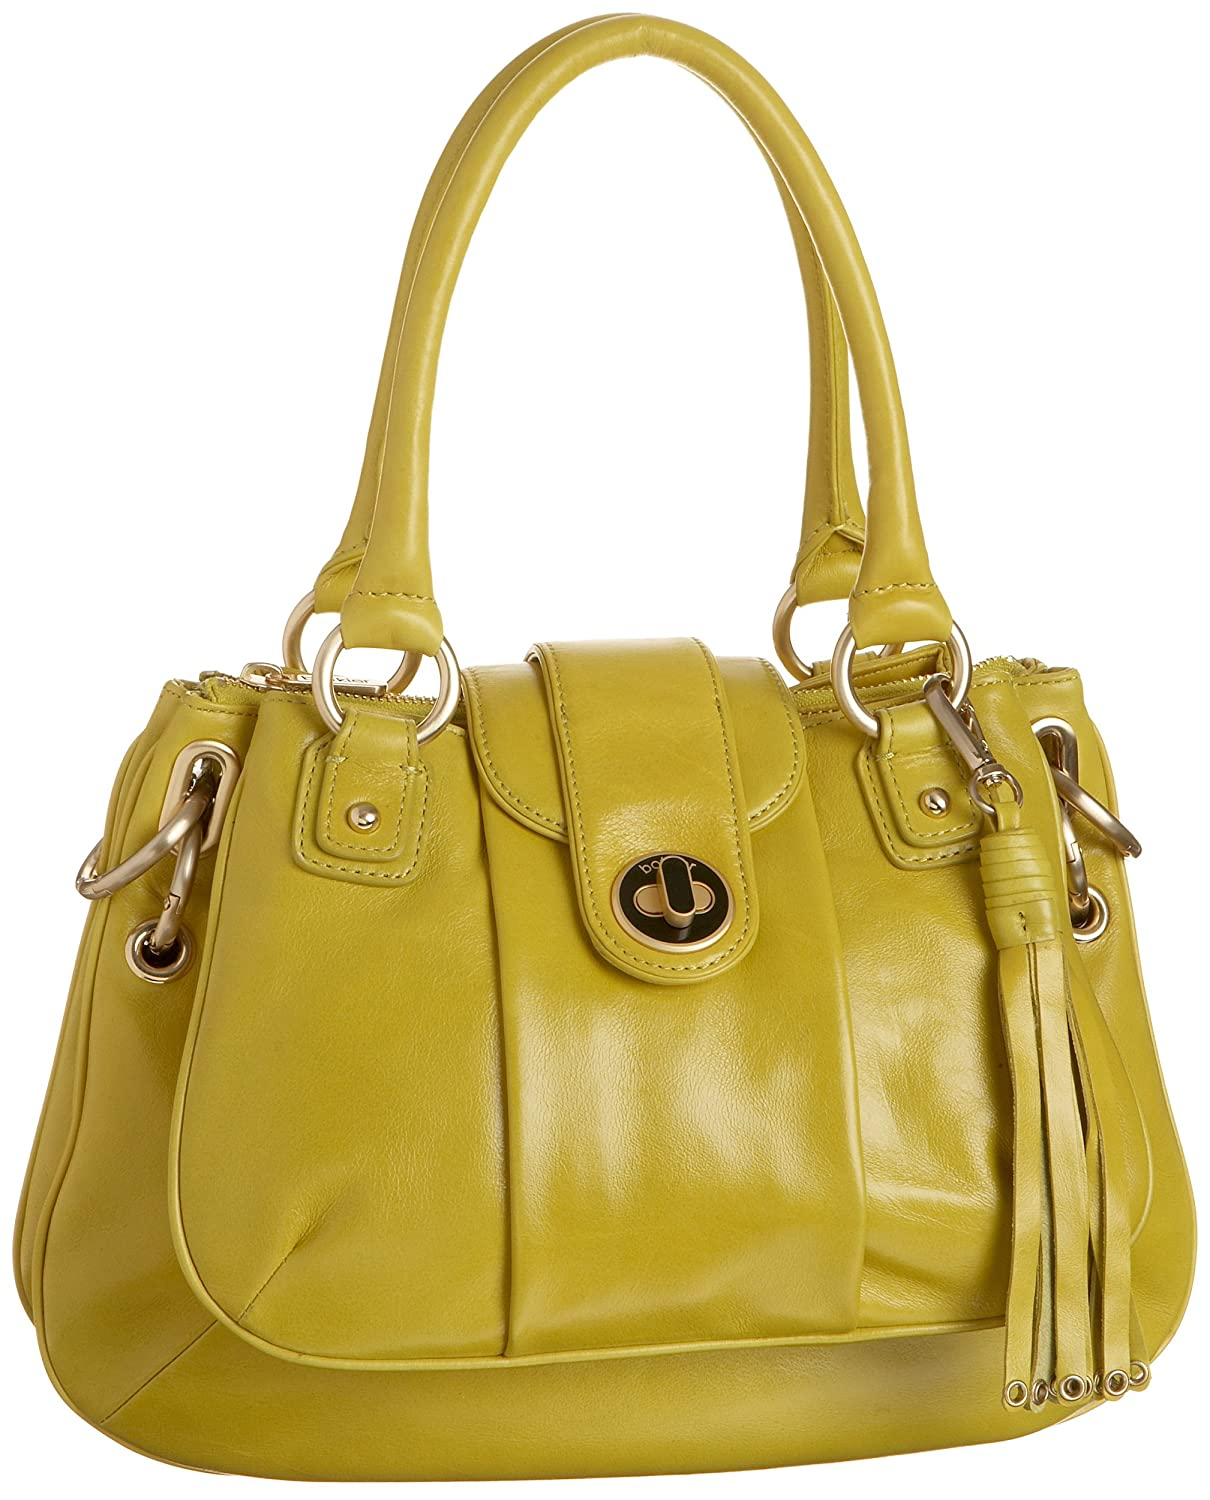 botkier Margot Satchel - Free Overnight Shipping & Return Shipping: Endless.com :  leather lined yellow bag